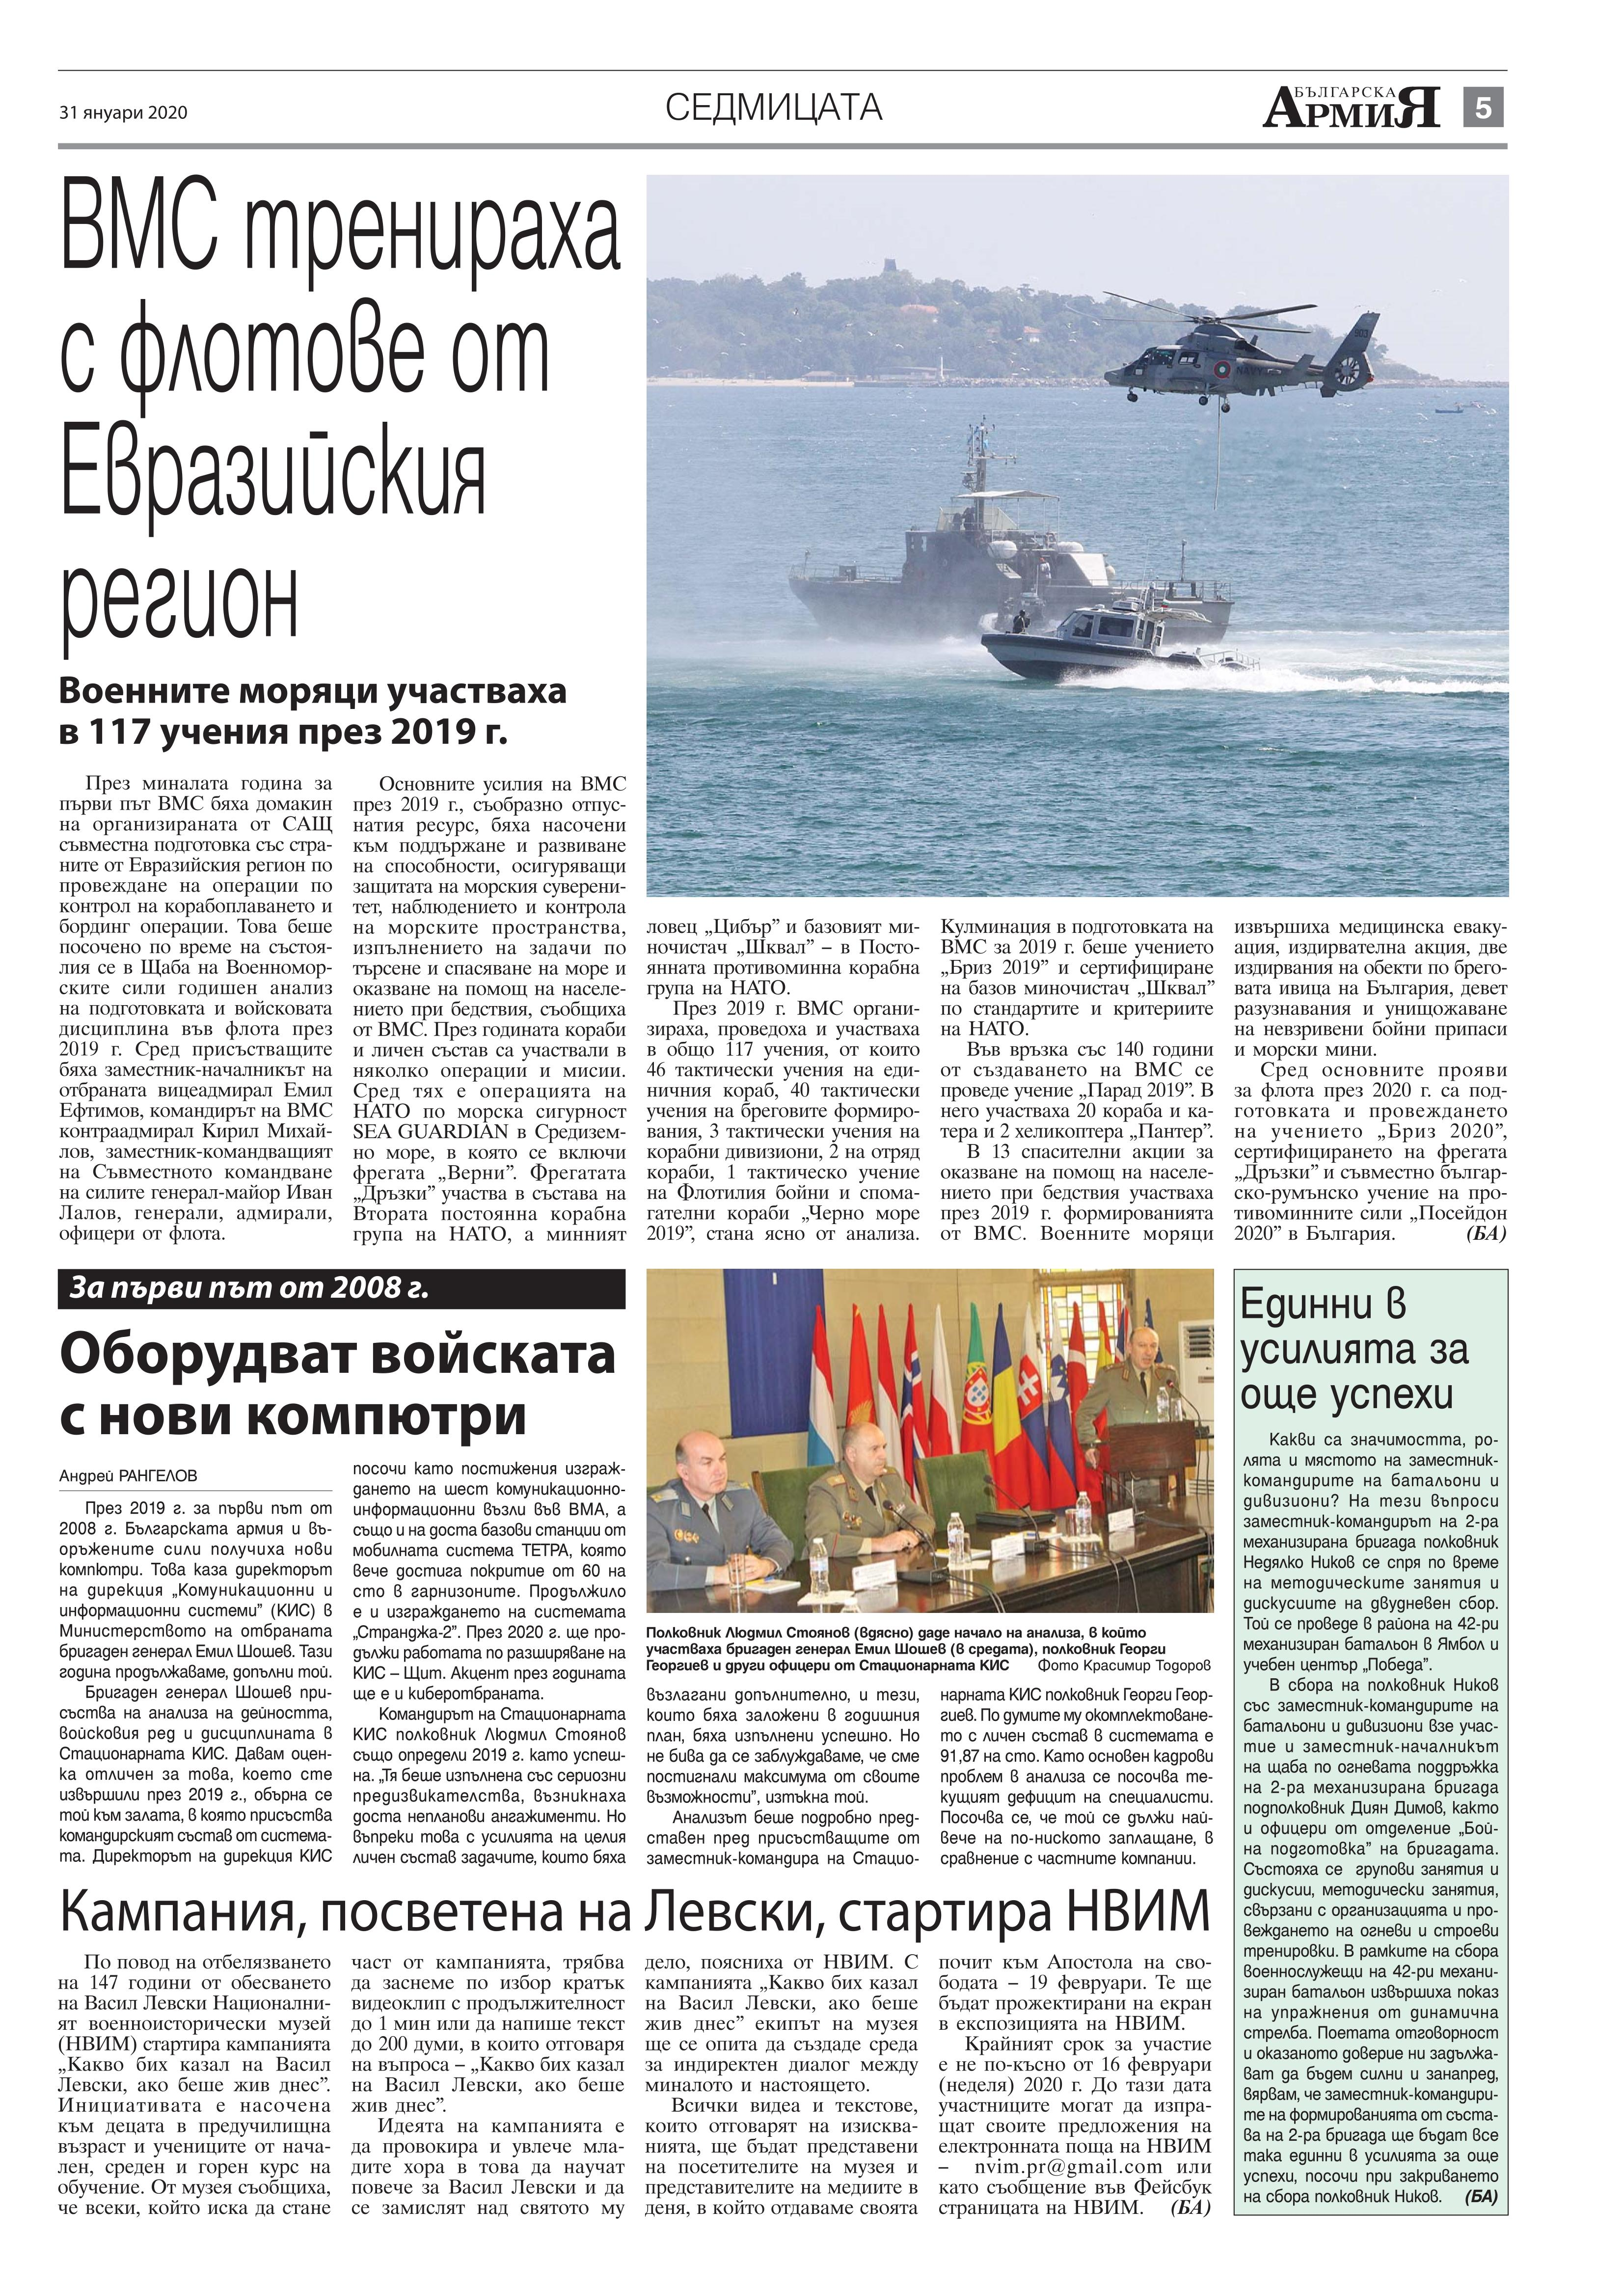 https://www.armymedia.bg/wp-content/uploads/2015/06/05.page1_-121.jpg